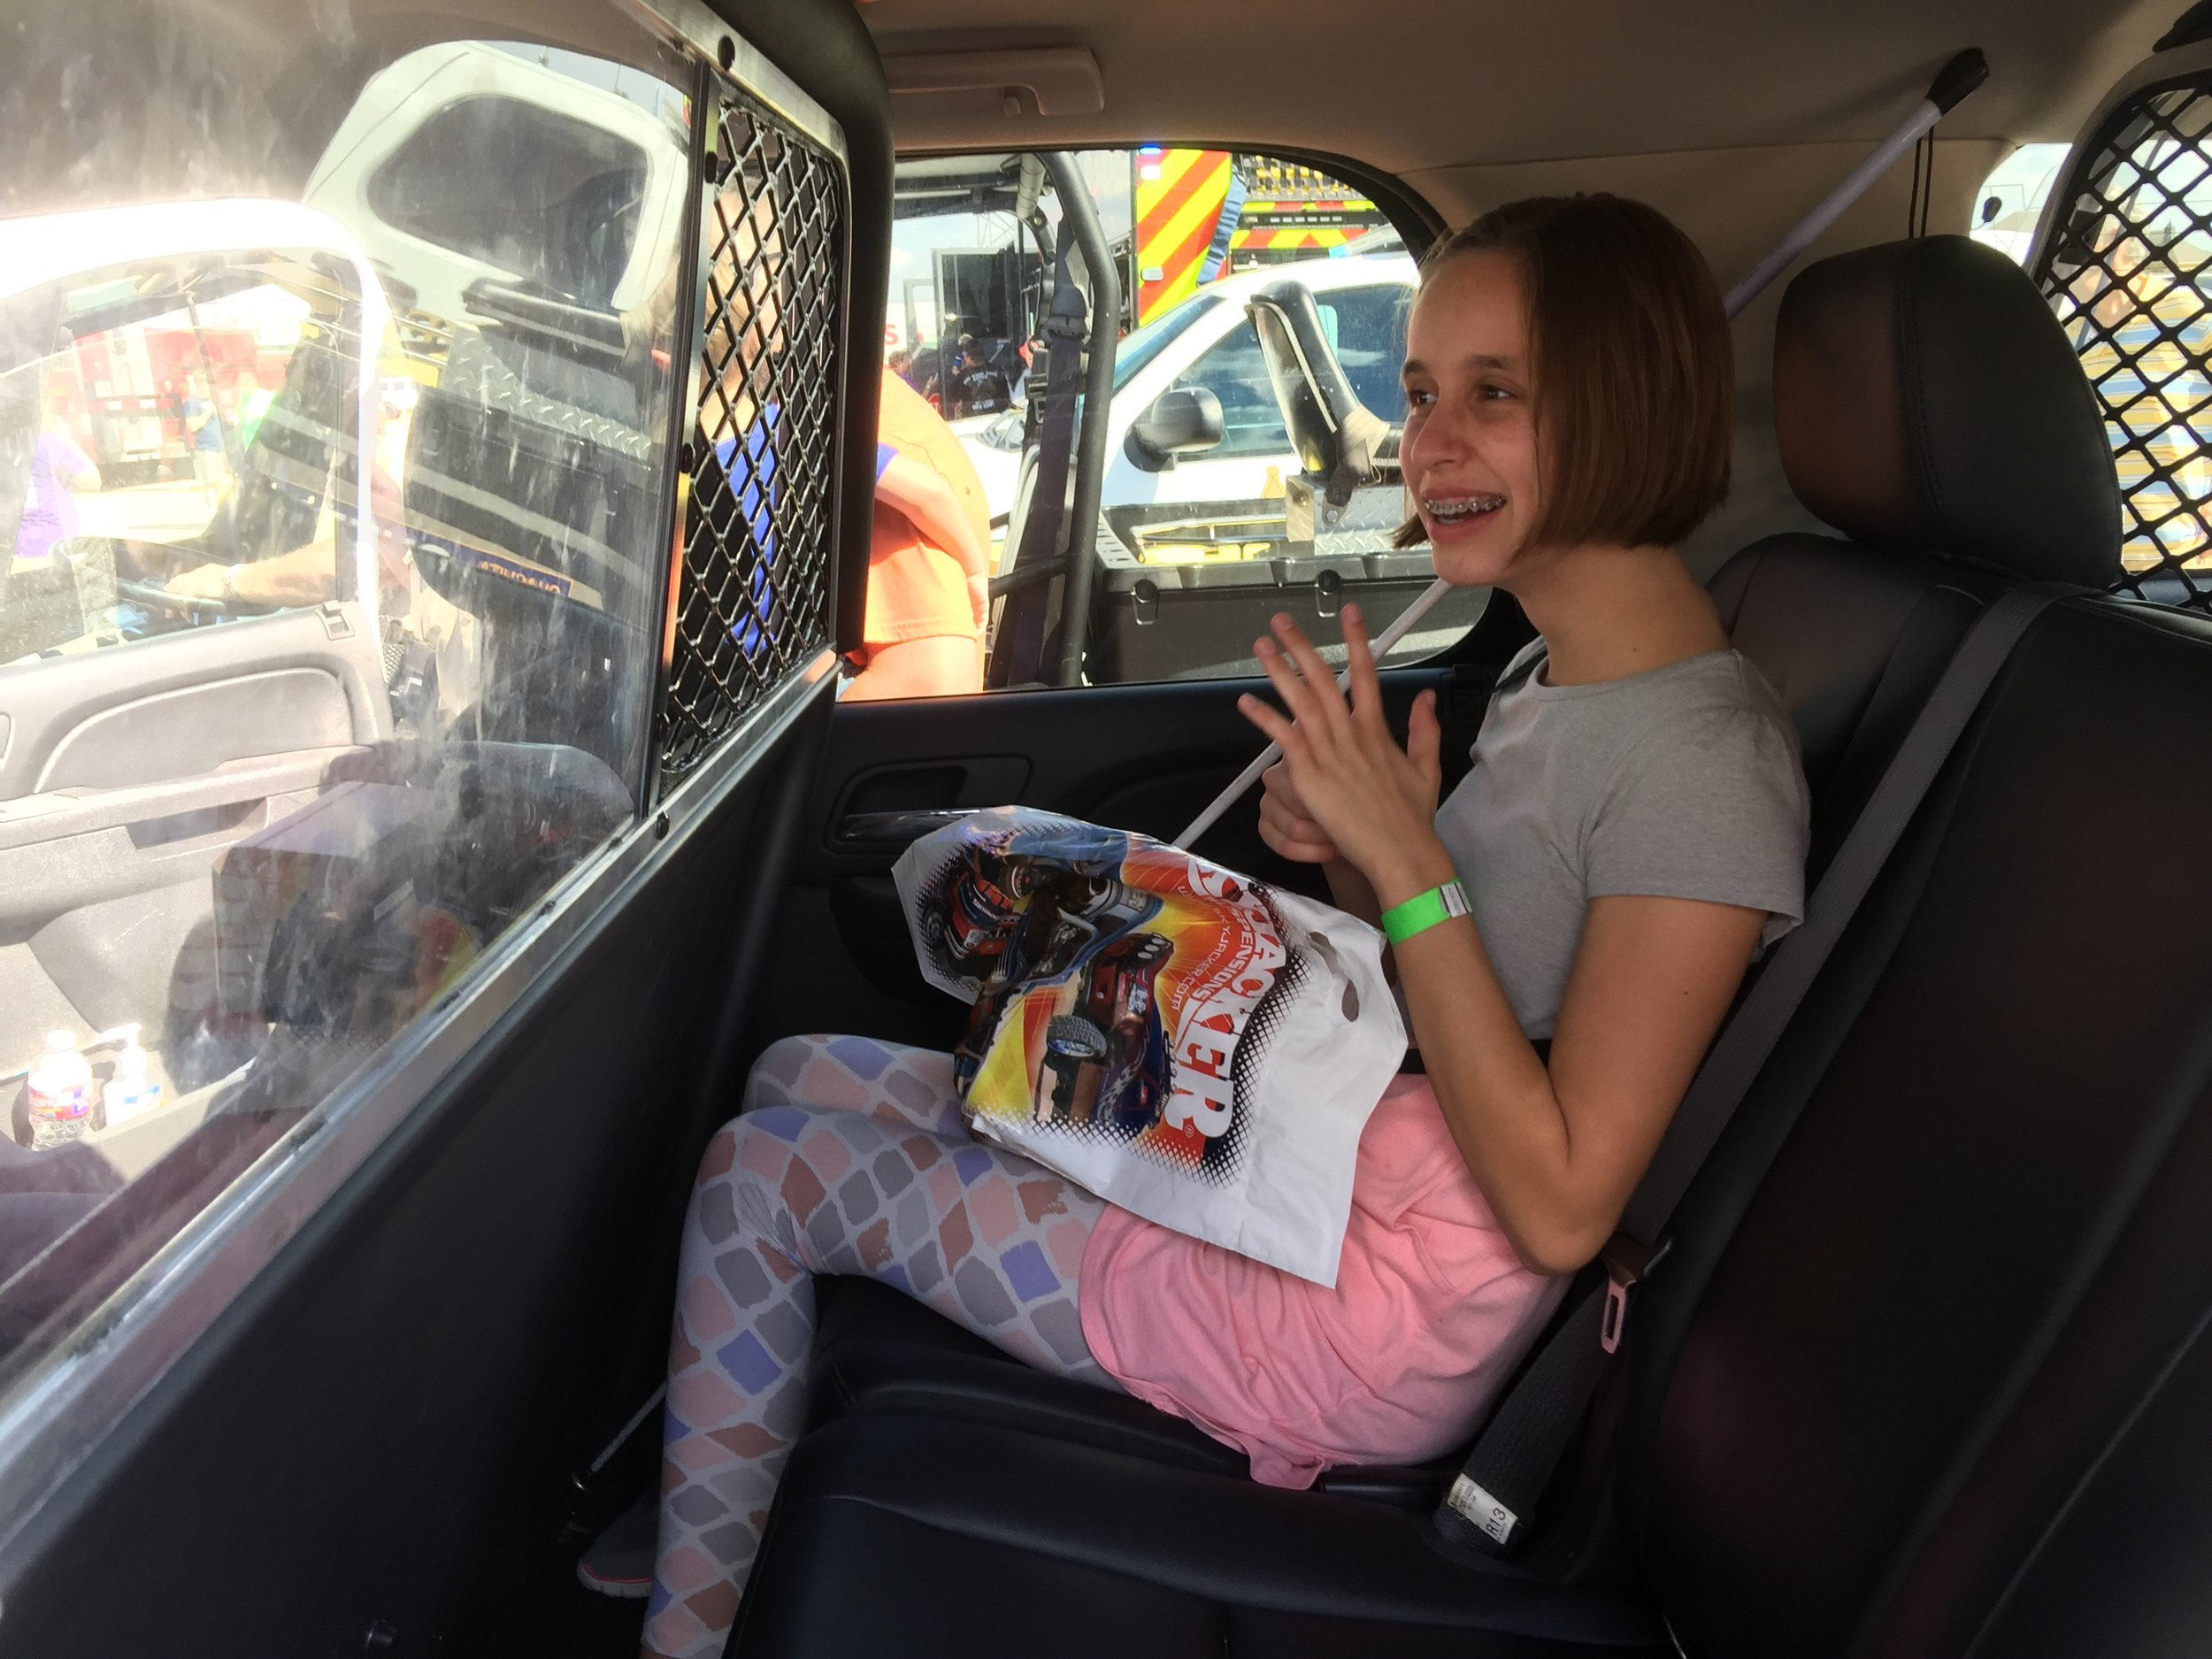 Lindsay in the back of a police car: she sure looks happy considering where she's sitting!